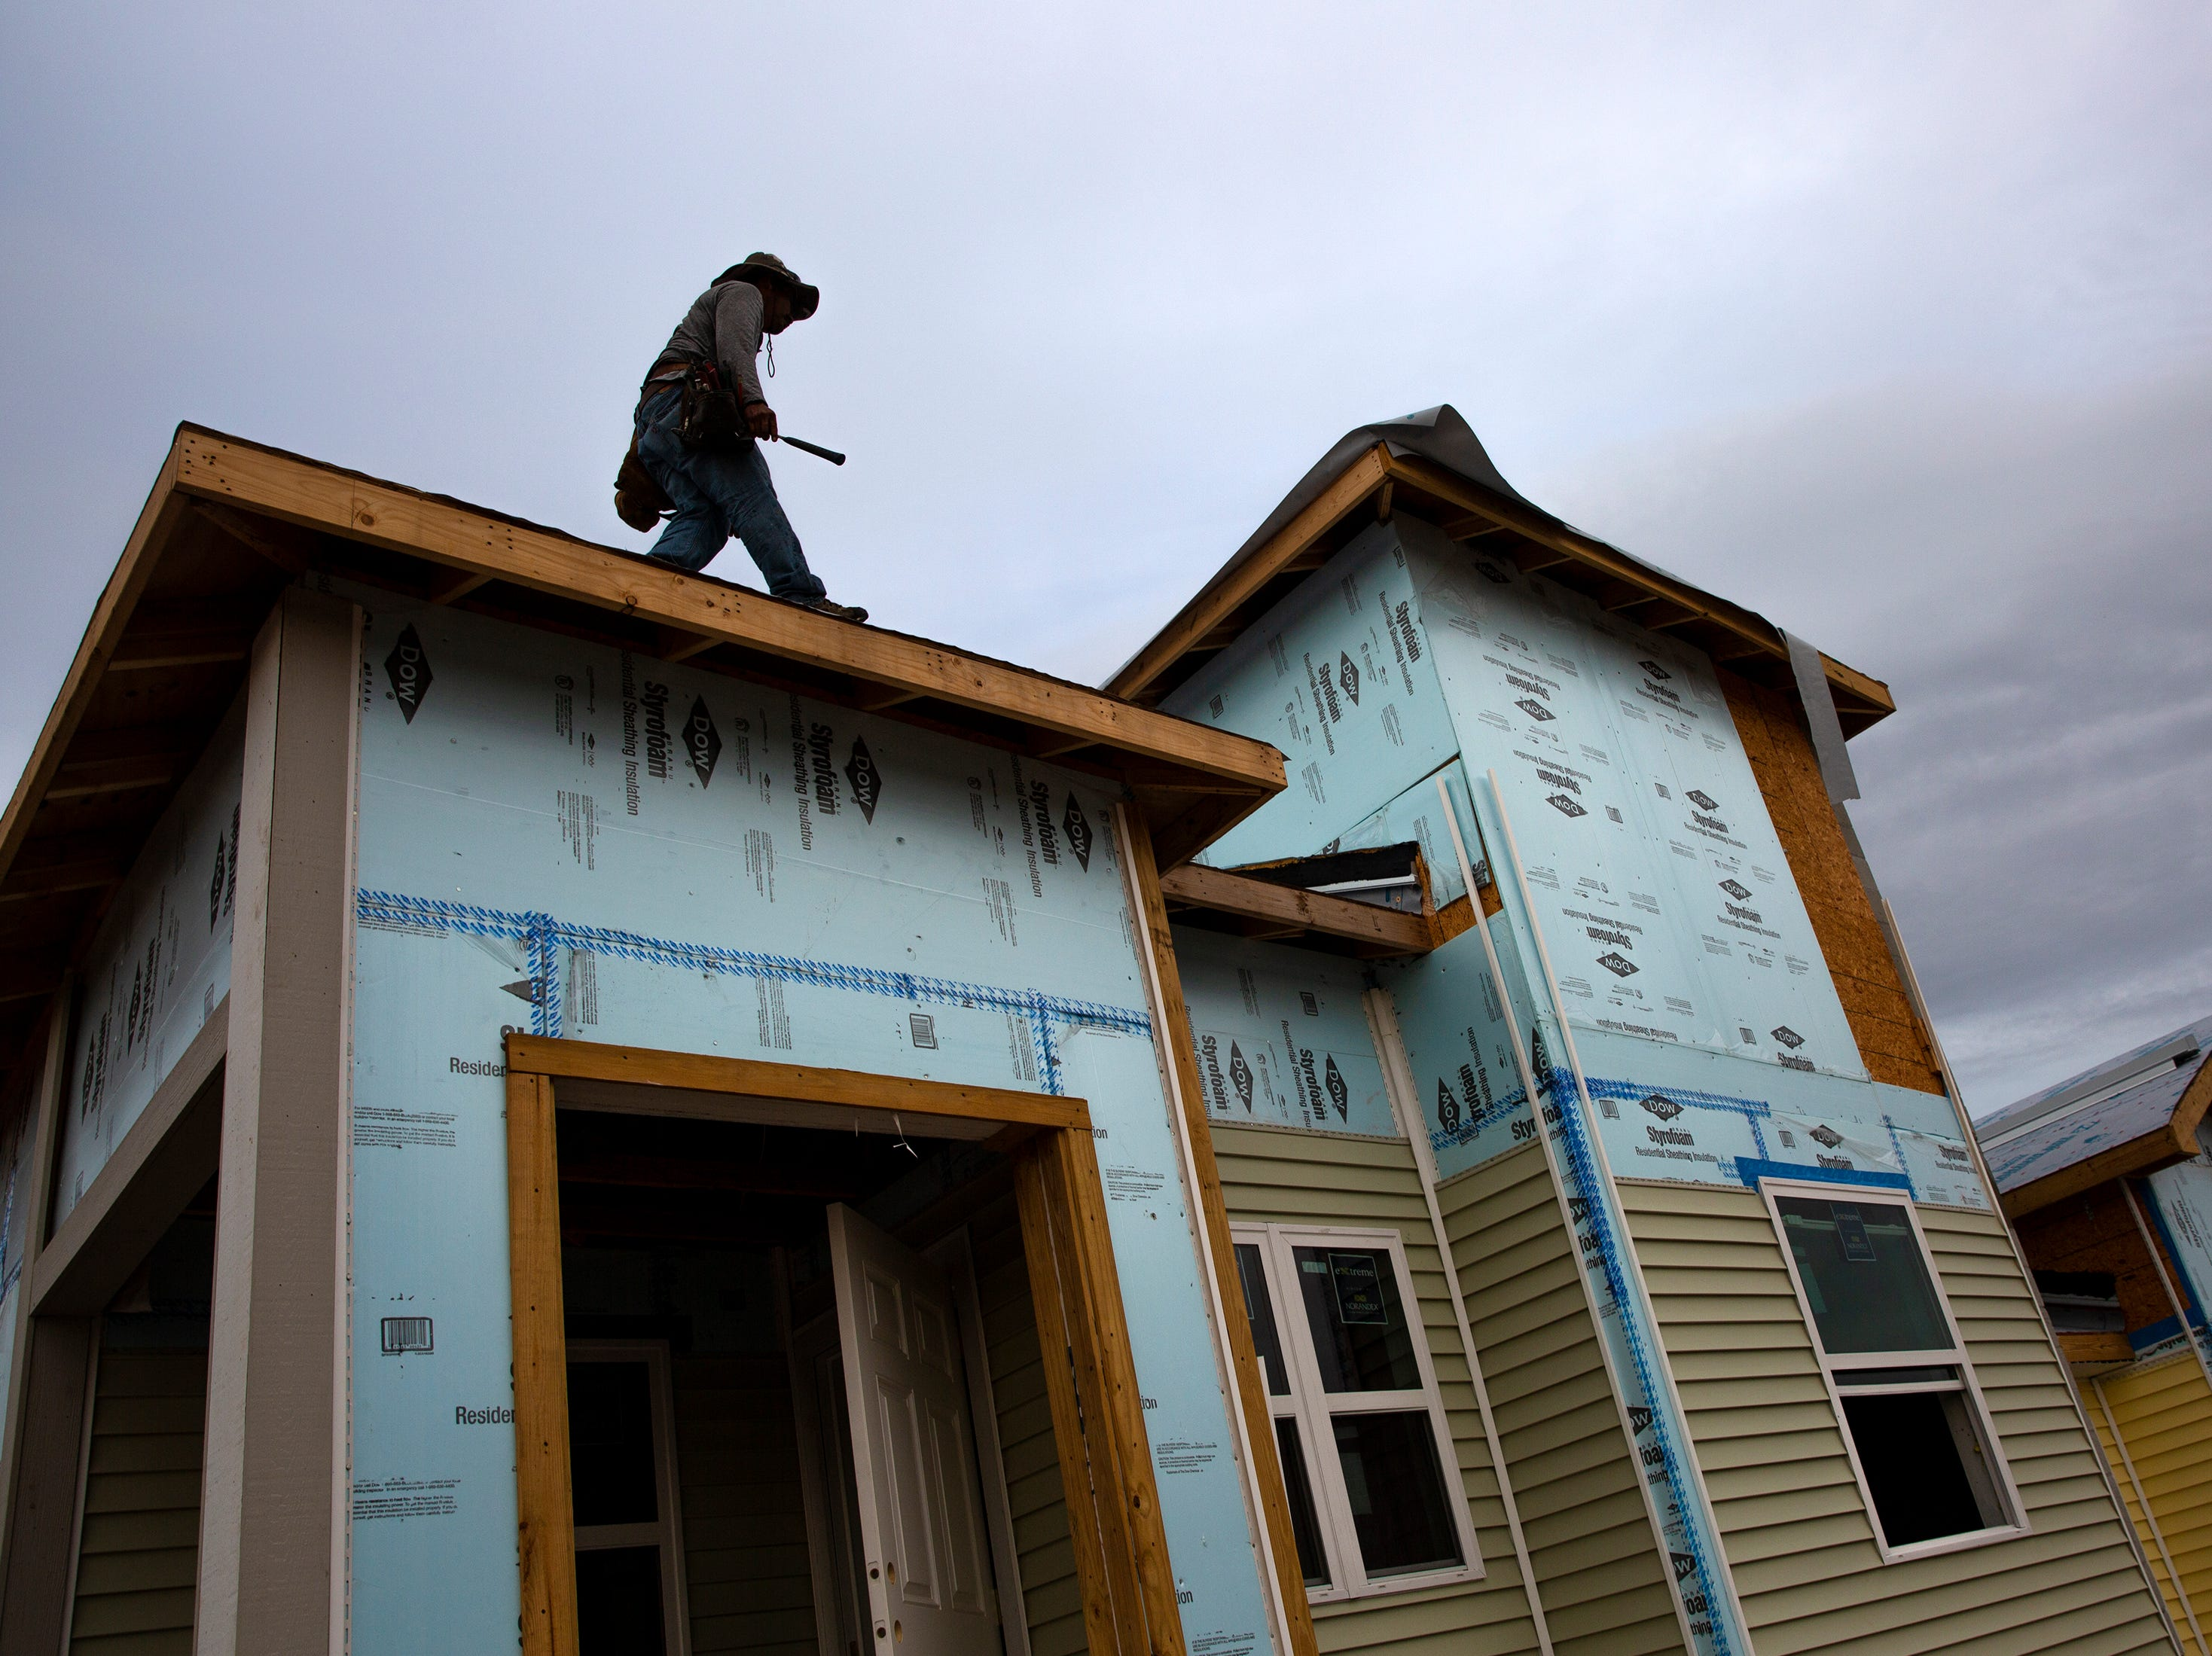 A contract worker with Habitat for Humanity of Collier County works on the roof of a home Saturday, Jan. 5, 2019, in the Dockside neighborhood in East Naples.